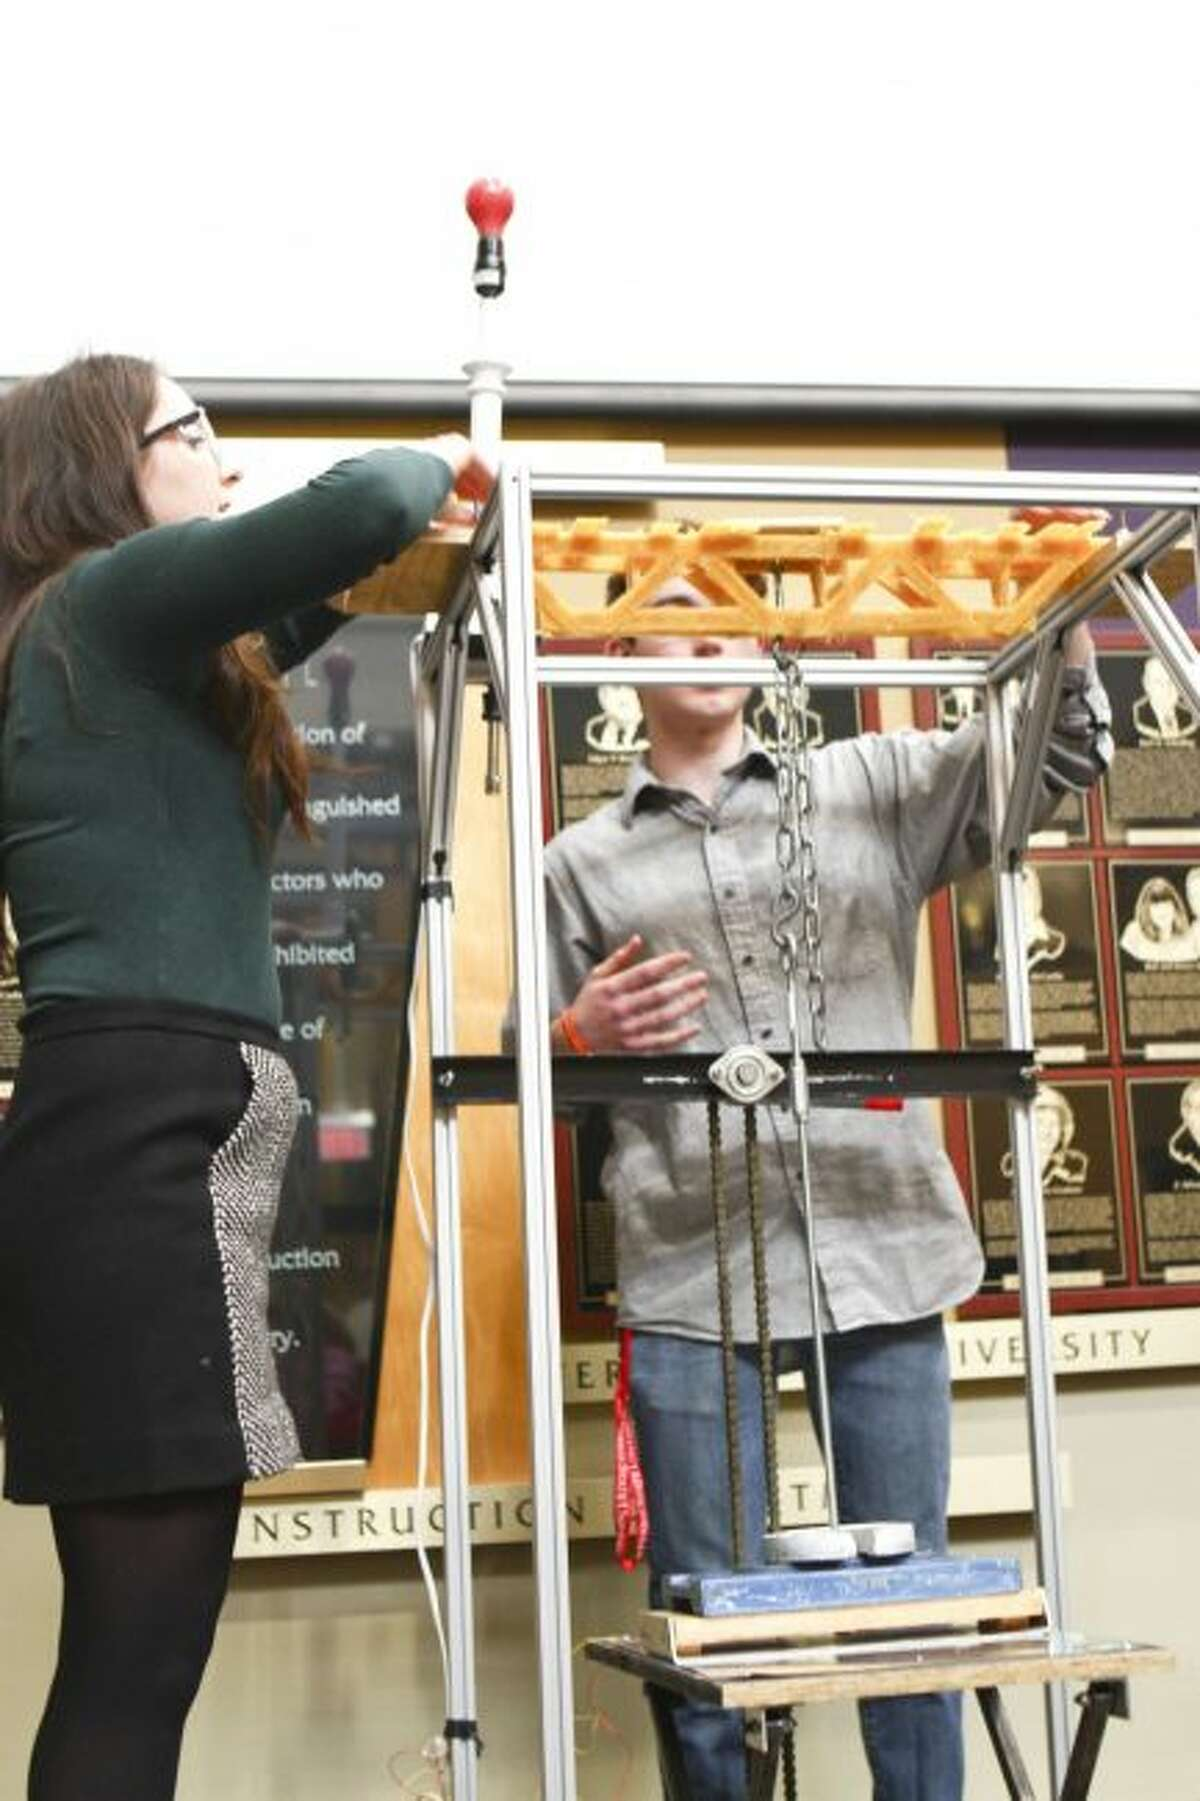 MAKING ADJUSTMENTS: (From left) Zofia Freiberg and Ryan Cosper, of the Big Rapids High School team Campanella Captains, adjust their bridge for another round of weight testing during the 18th annual Spaghetti Bridge competition at Ferris State University. (Pioneer photos/Meghan Haas)